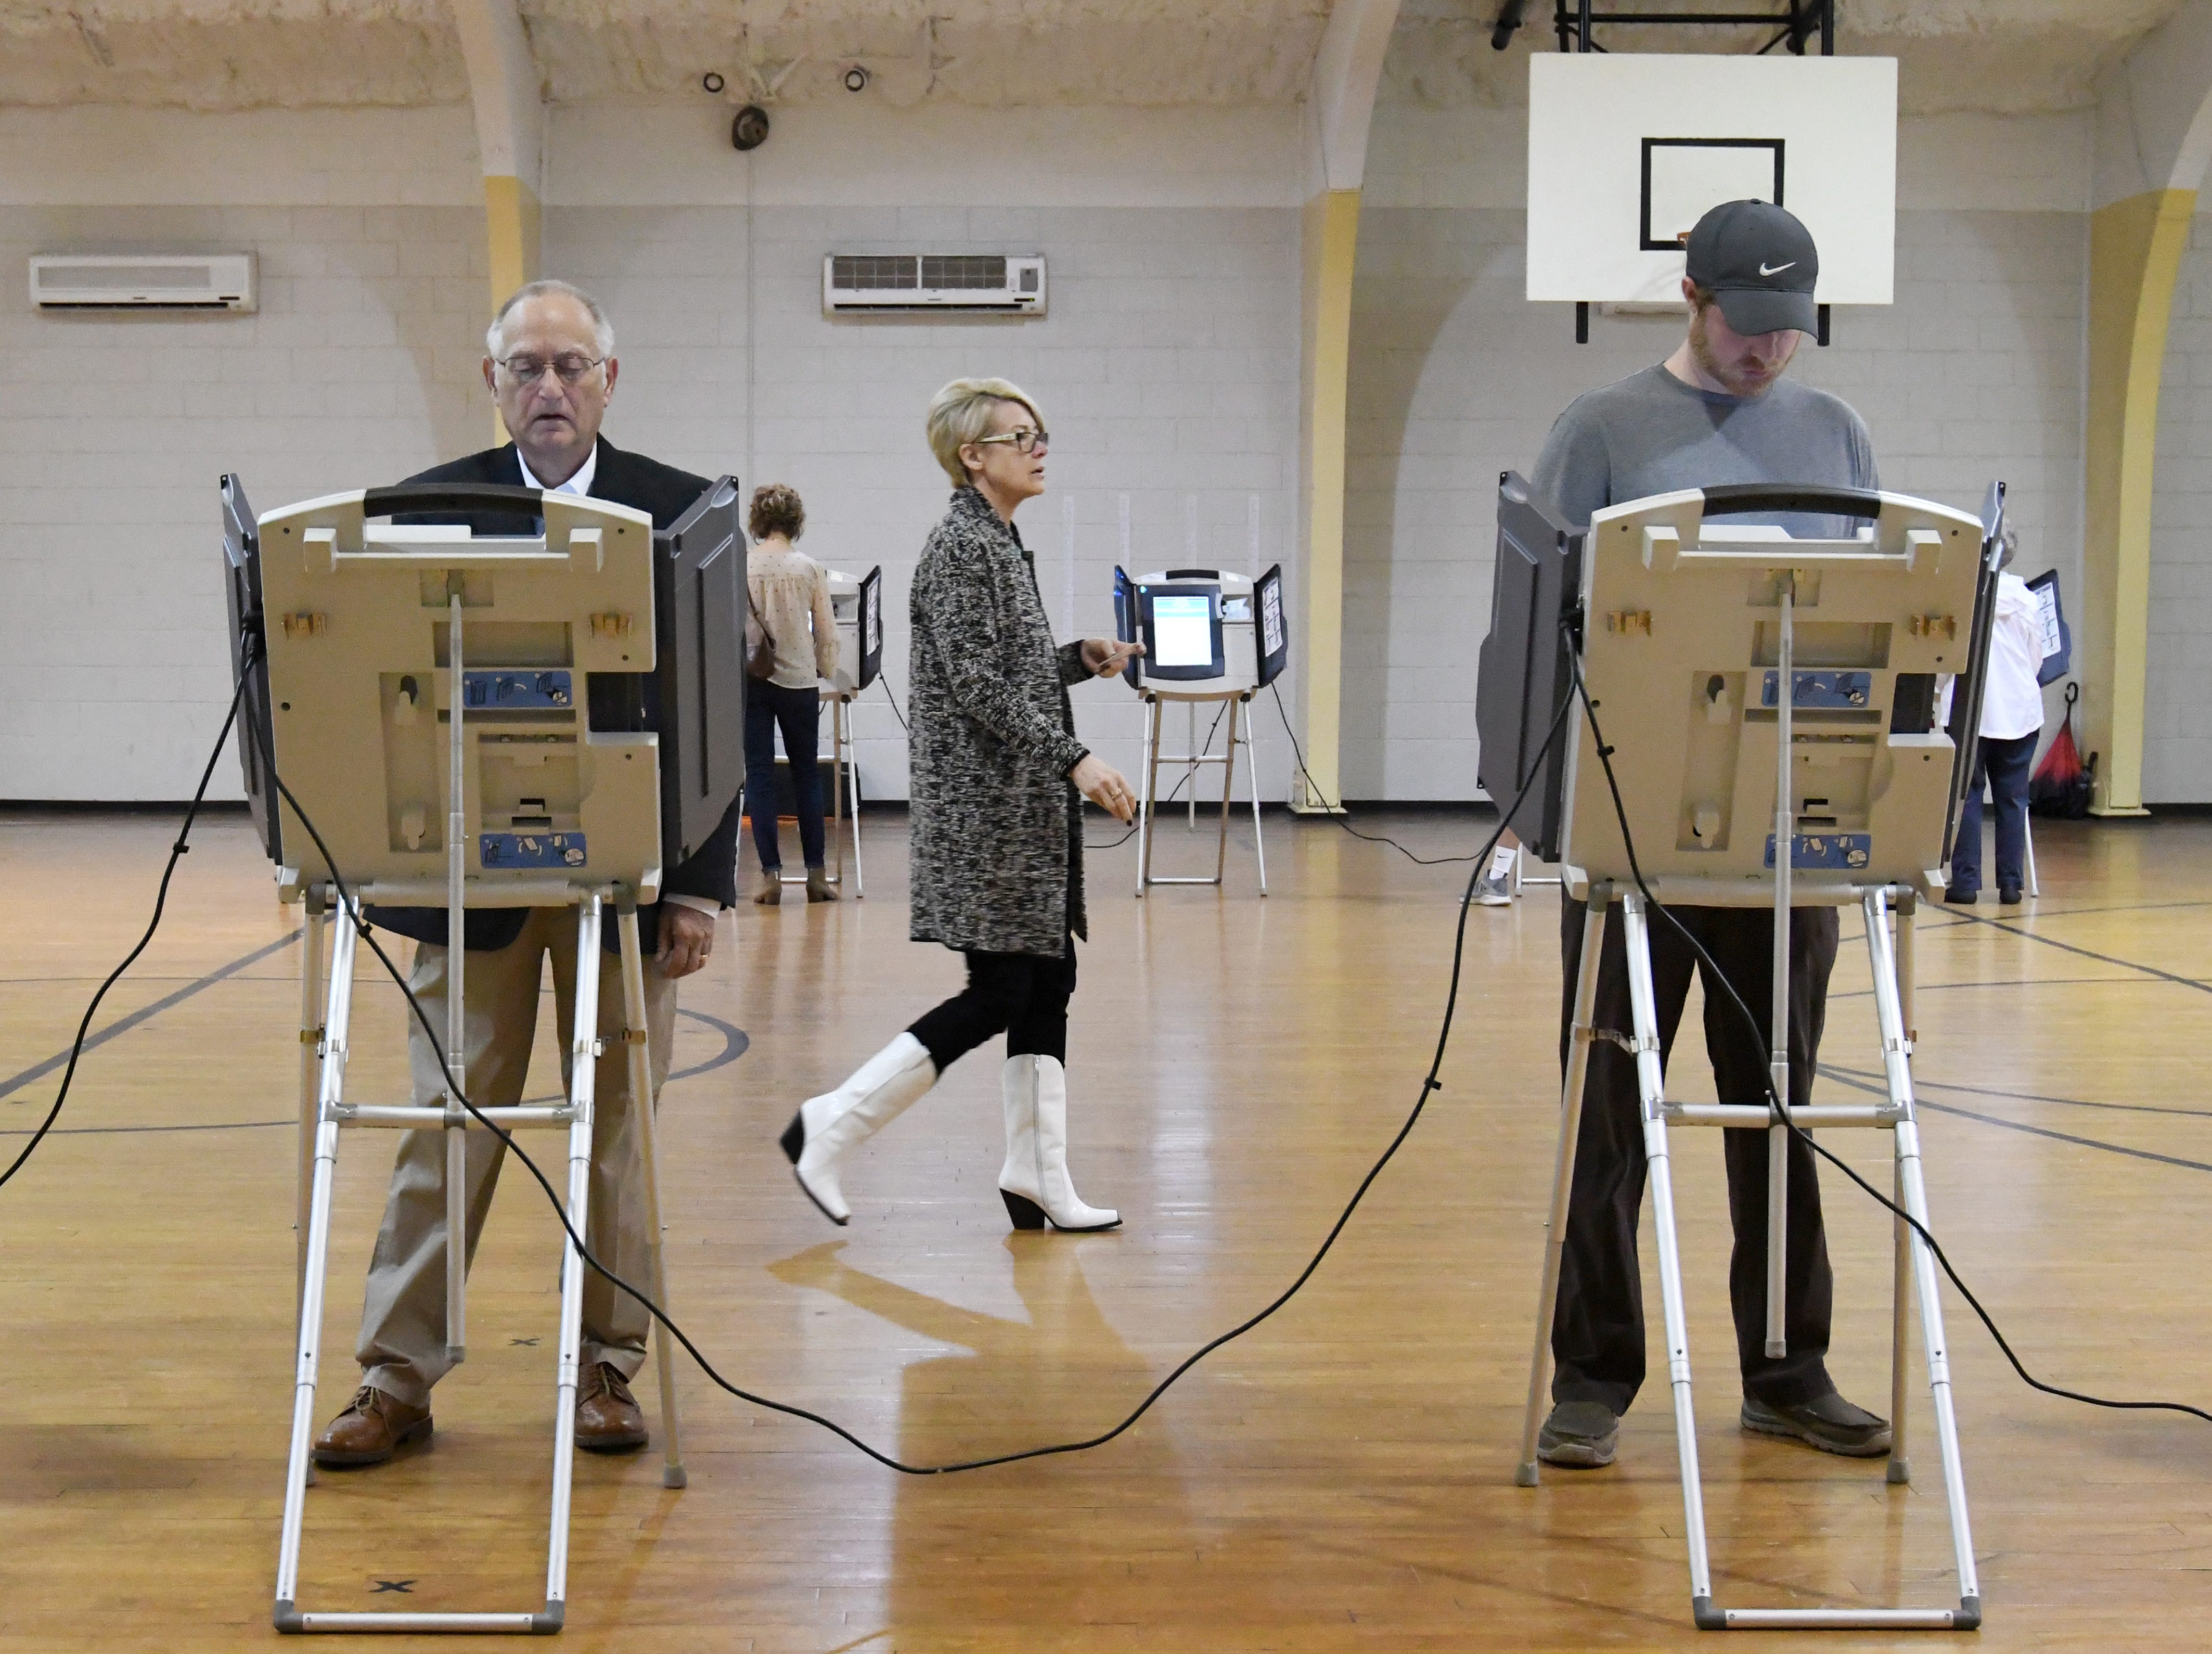 A rush of Hattiesburg residents cast their ballot during the midterm elections at the Thames Elementary precinct on Tuesday, November 6, 2018.